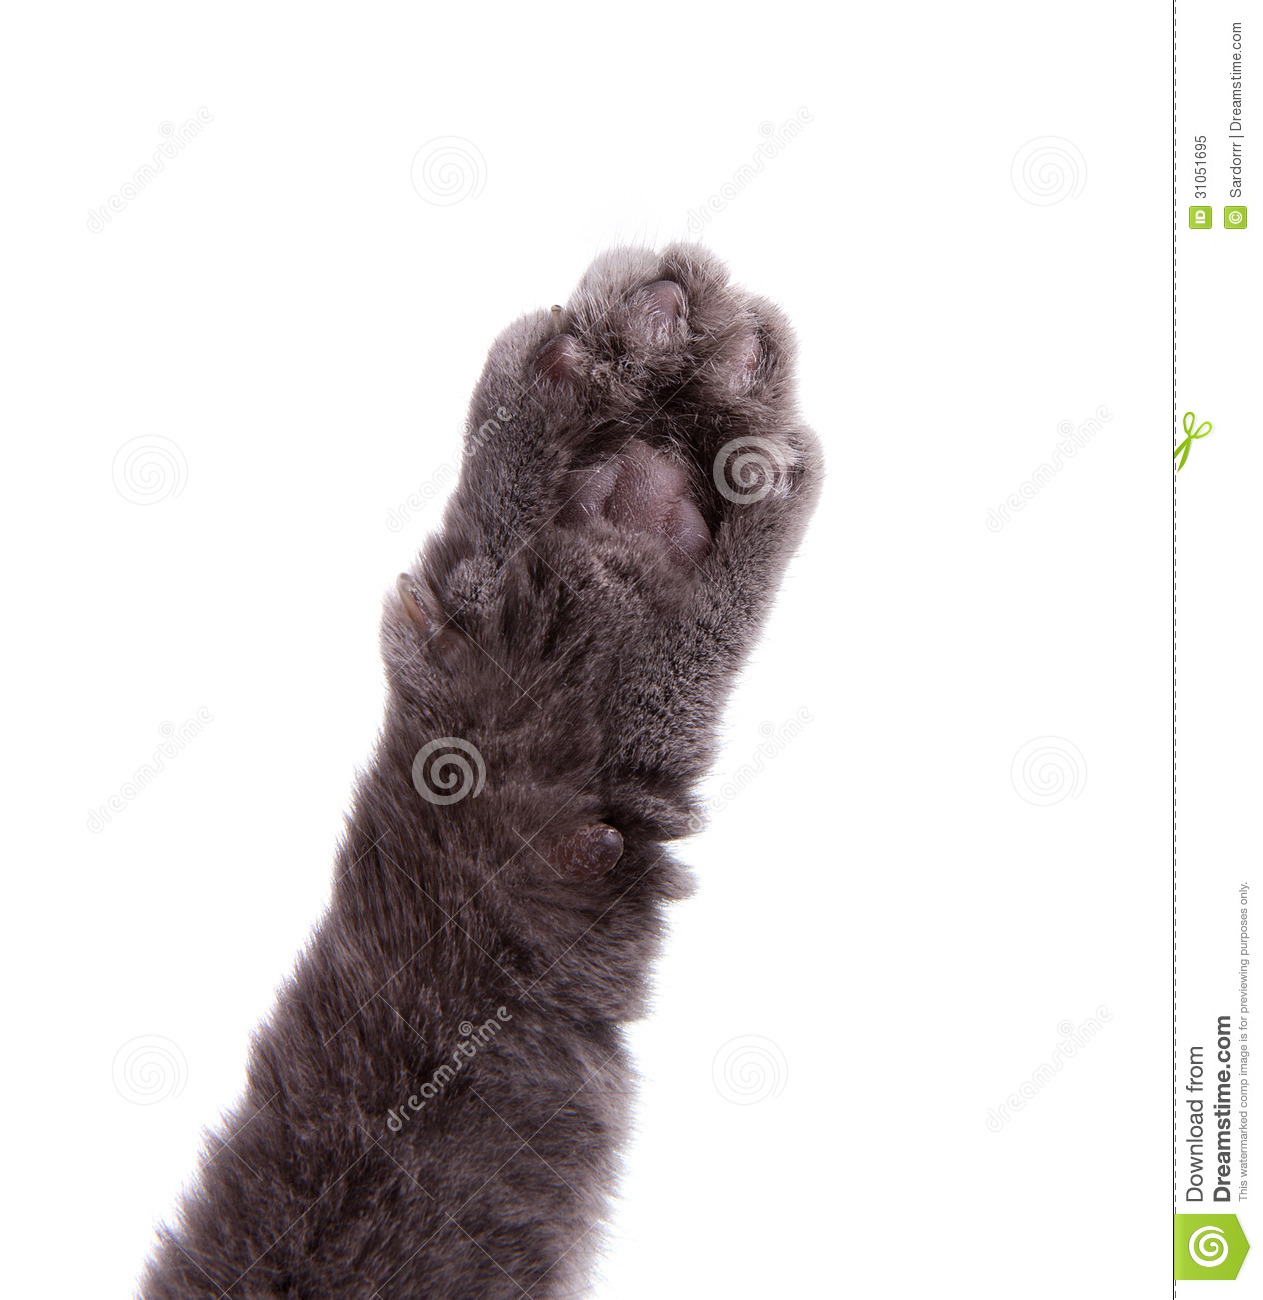 Cat's Arm Raised Paw Royalty Free Stock Photo - Image: 31051695